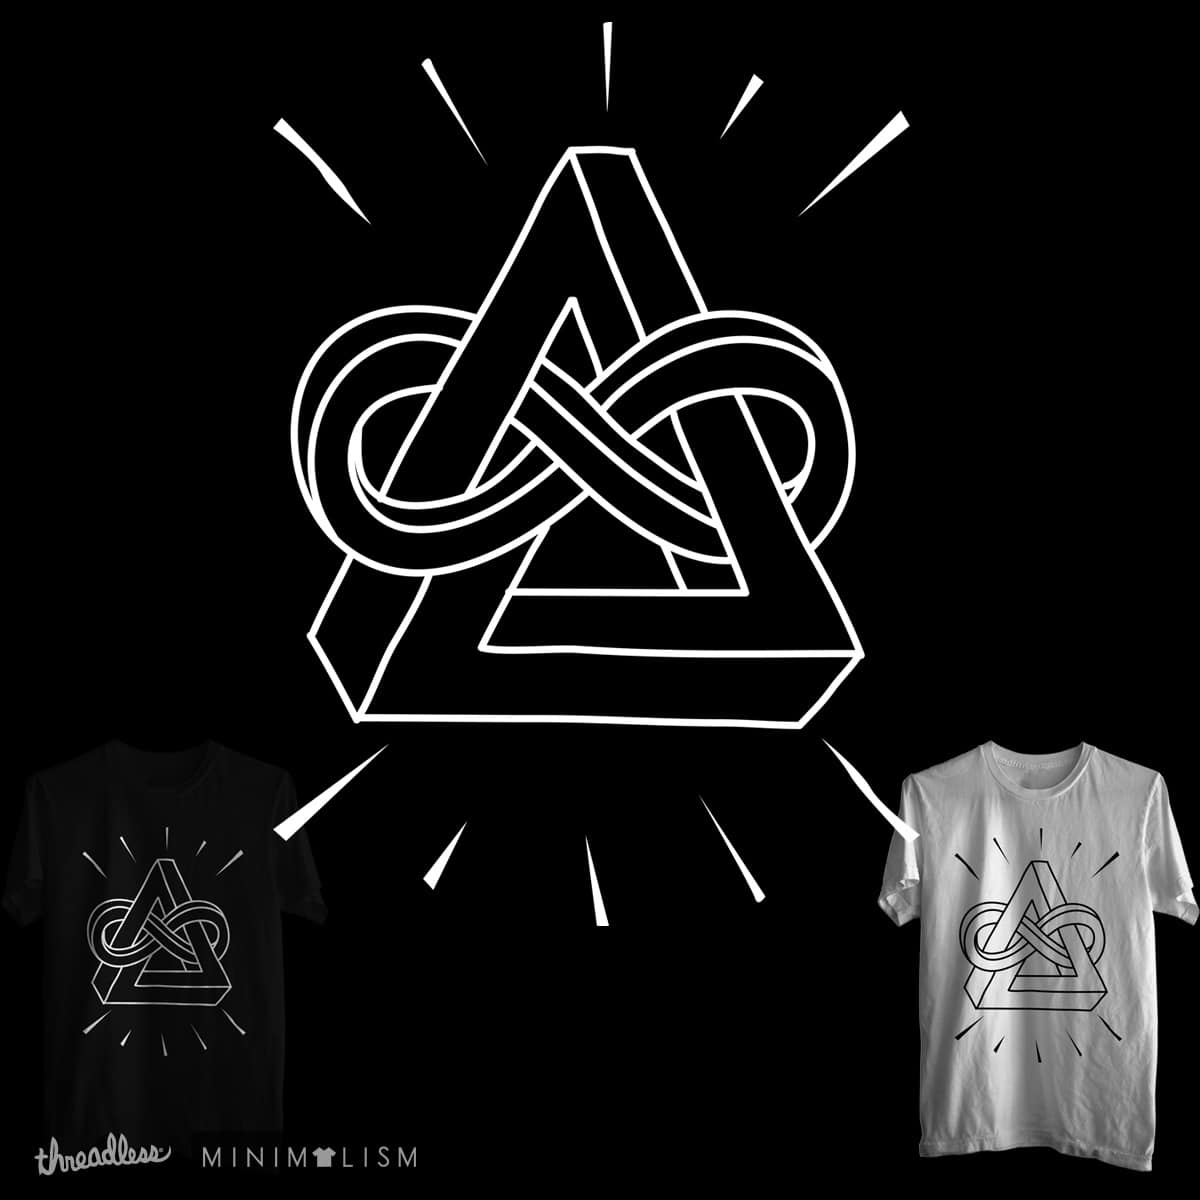 Triangle of Infinity by ndough on Threadless